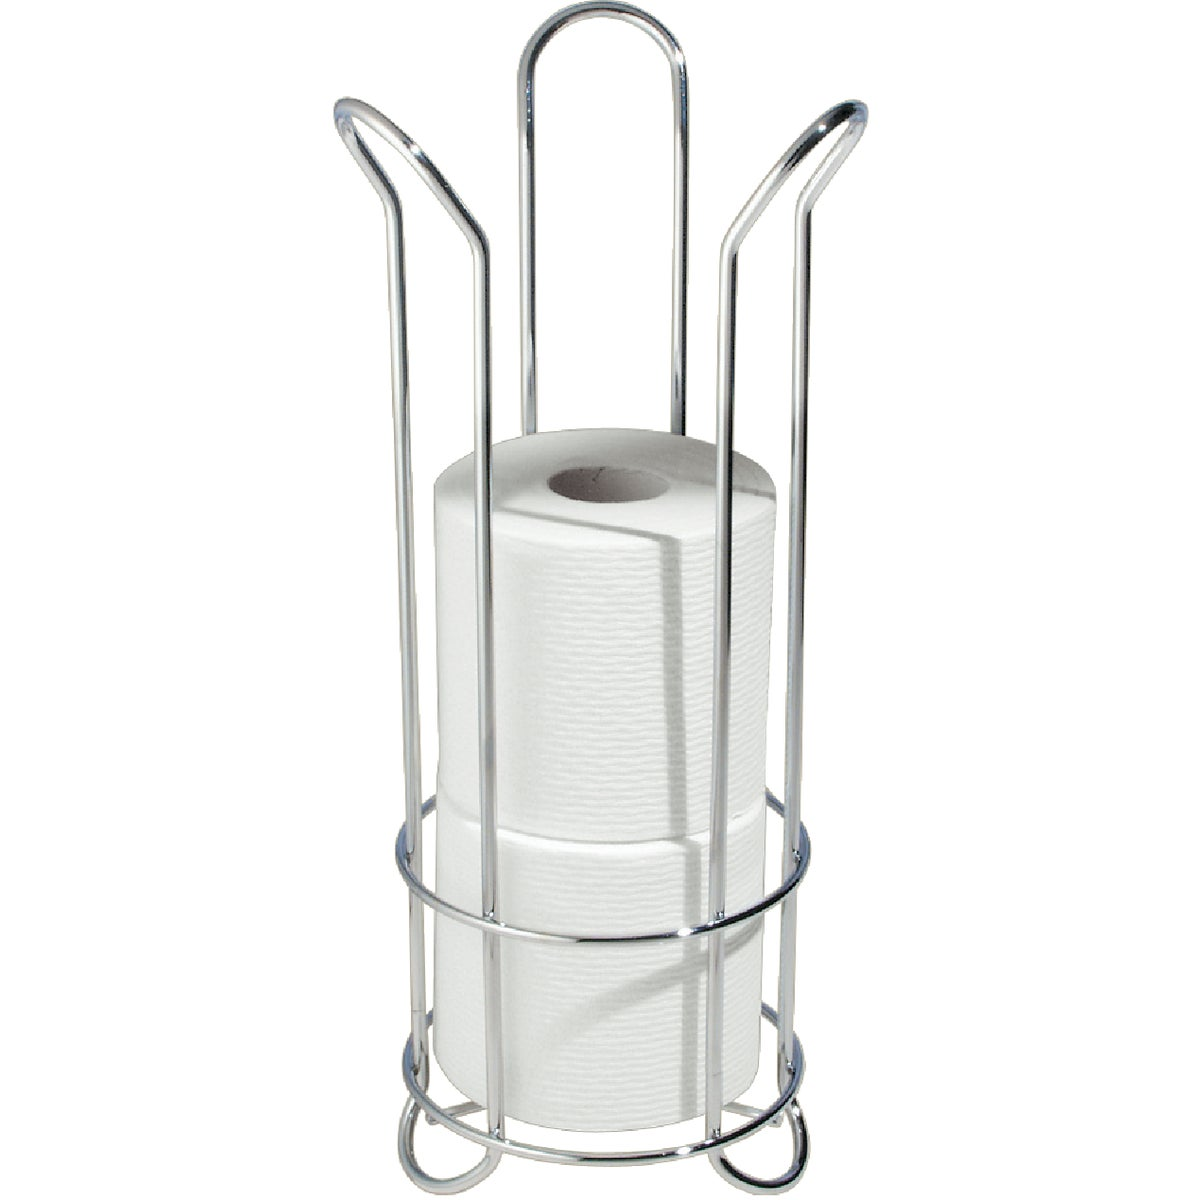 InterDesign Classico Tulip Free Standing Toilet Paper Roll Holder for Bathroo...